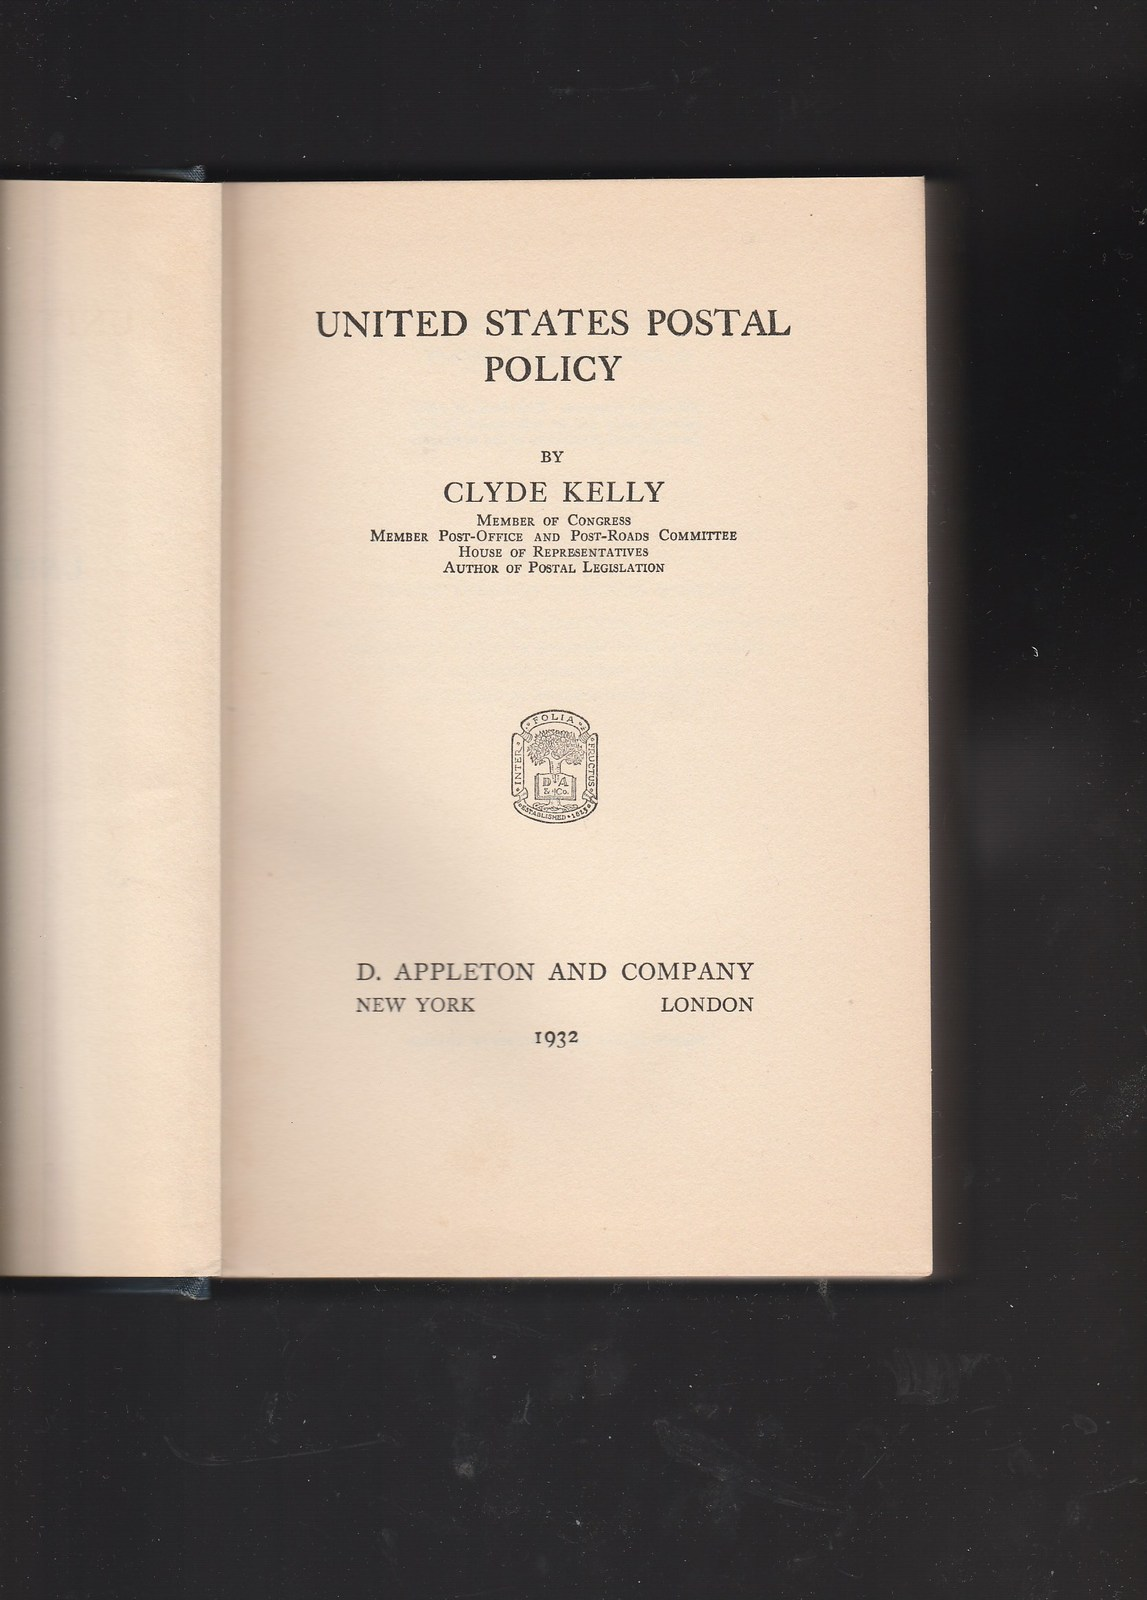 U. S. Postal Policy by Clyde Kelly 1932 early printing